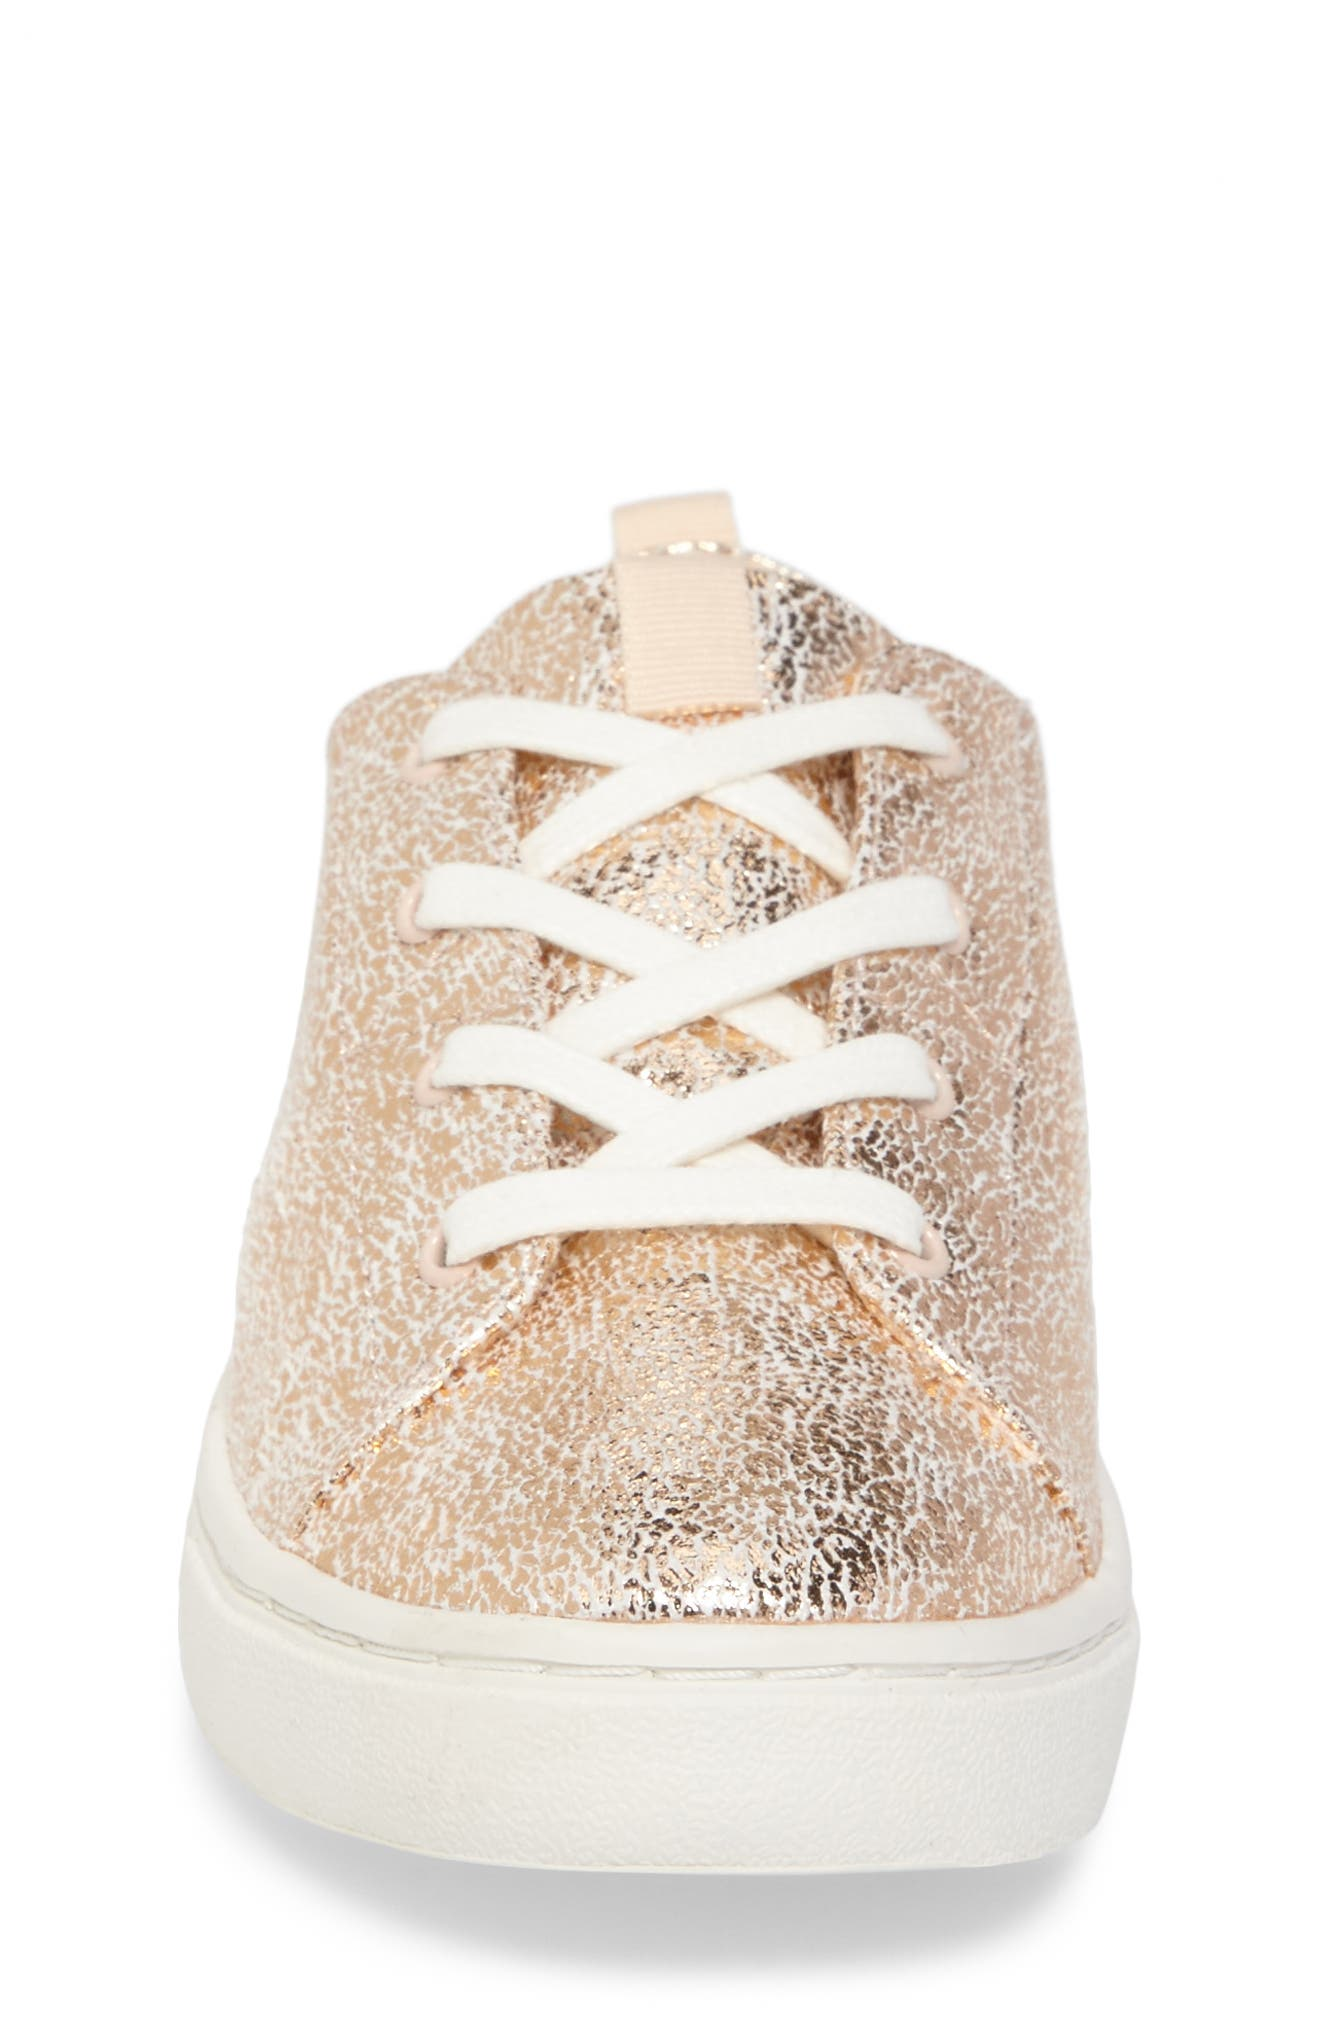 Lenny Metallic Sneaker,                             Alternate thumbnail 4, color,                             Rose Gold Crackle Foil